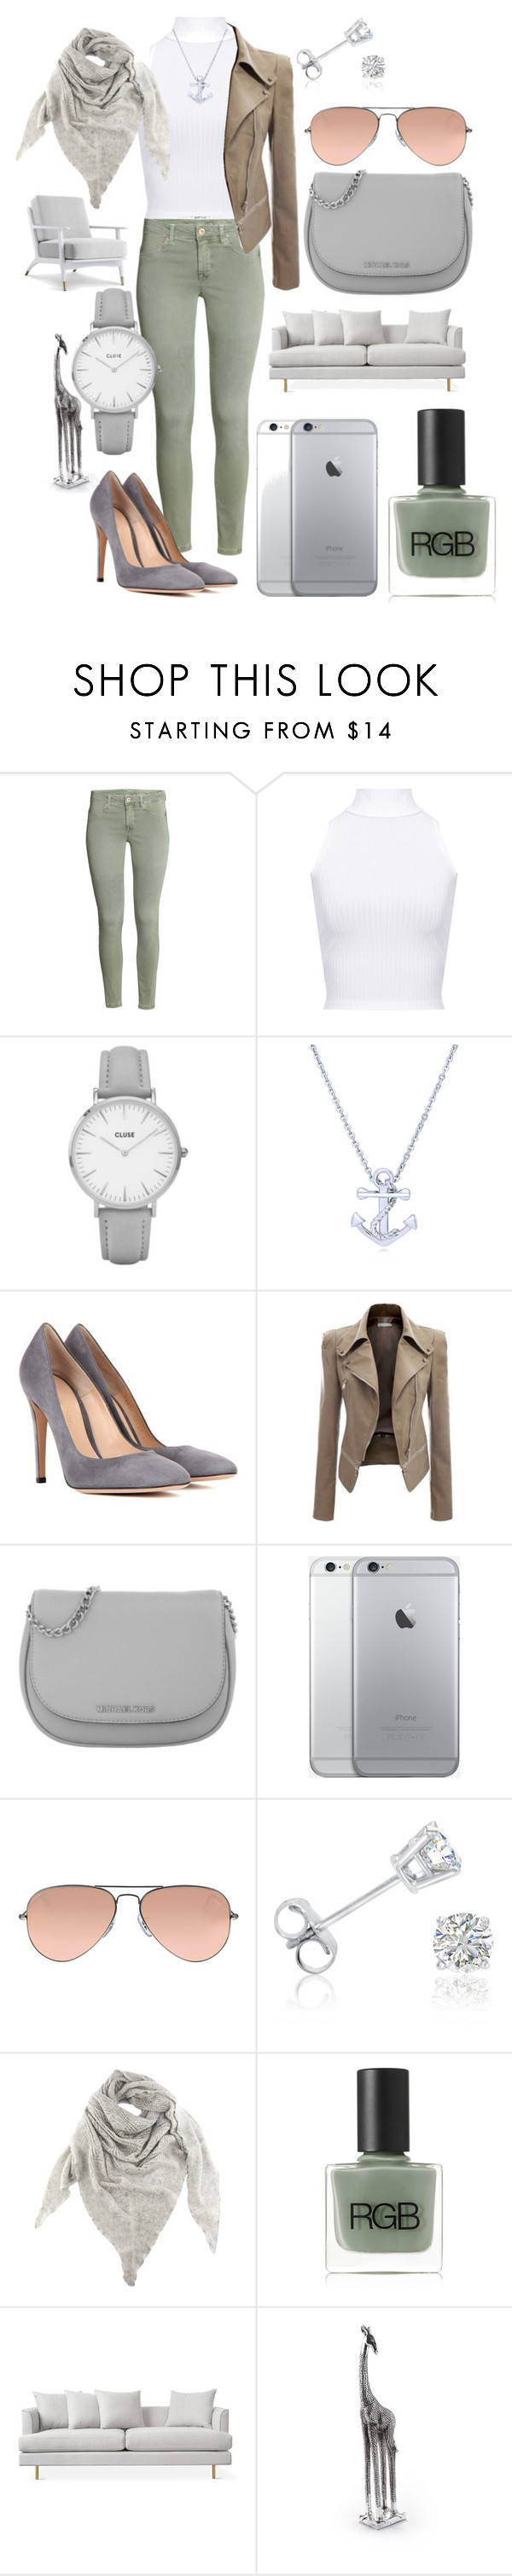 """""""Alex's design."""" by elizabethfrey ❤ liked on Polyvore featuring WearAll, Topshop, BERRICLE, Gianvito Rossi, Michael Kors, Ray-Ban, Amanda Rose Collection, Black, RGB and Puji"""